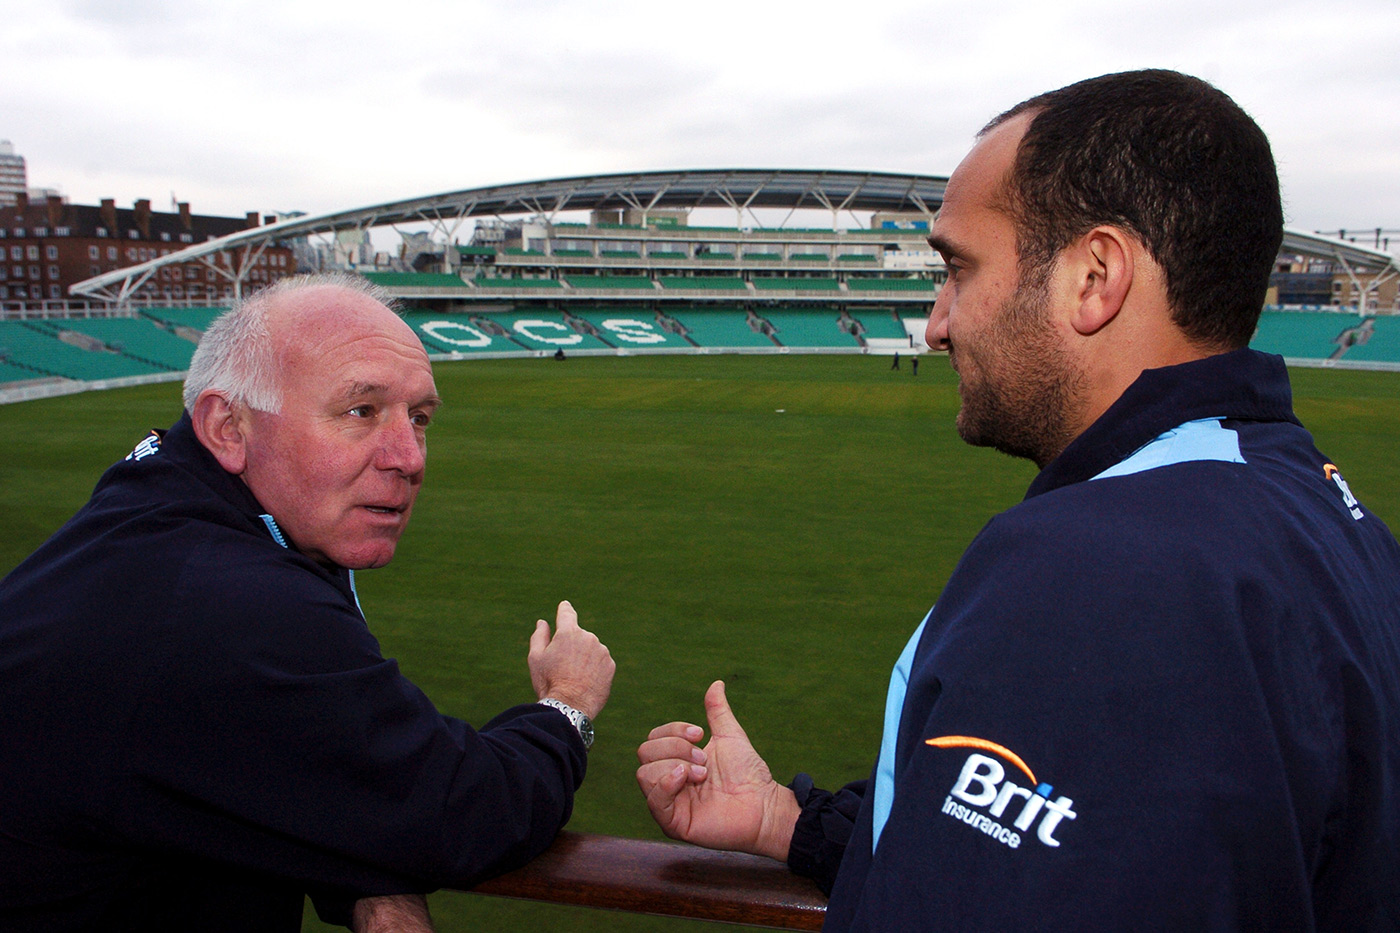 Alan and Mark Butcher at The Oval